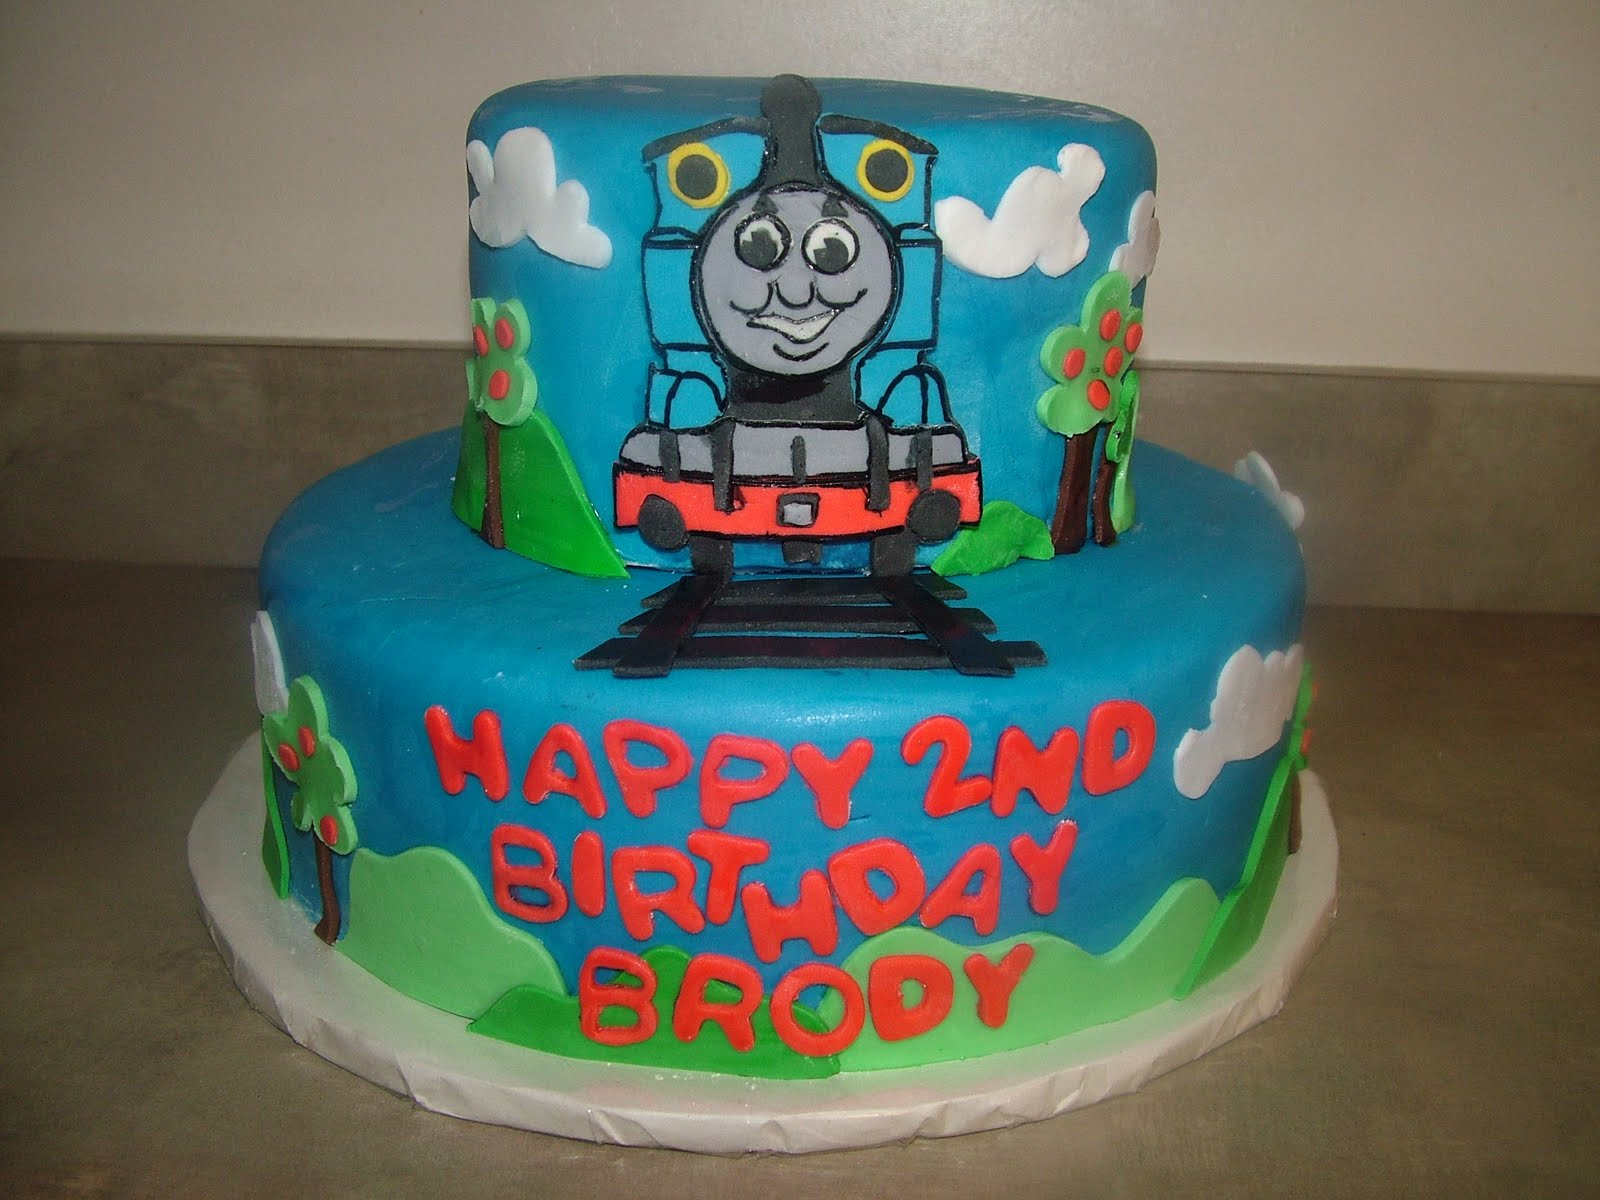 You have to see Thomas the Tank Engine cake by Macgurl! |Thomas The Tank Engine Cake